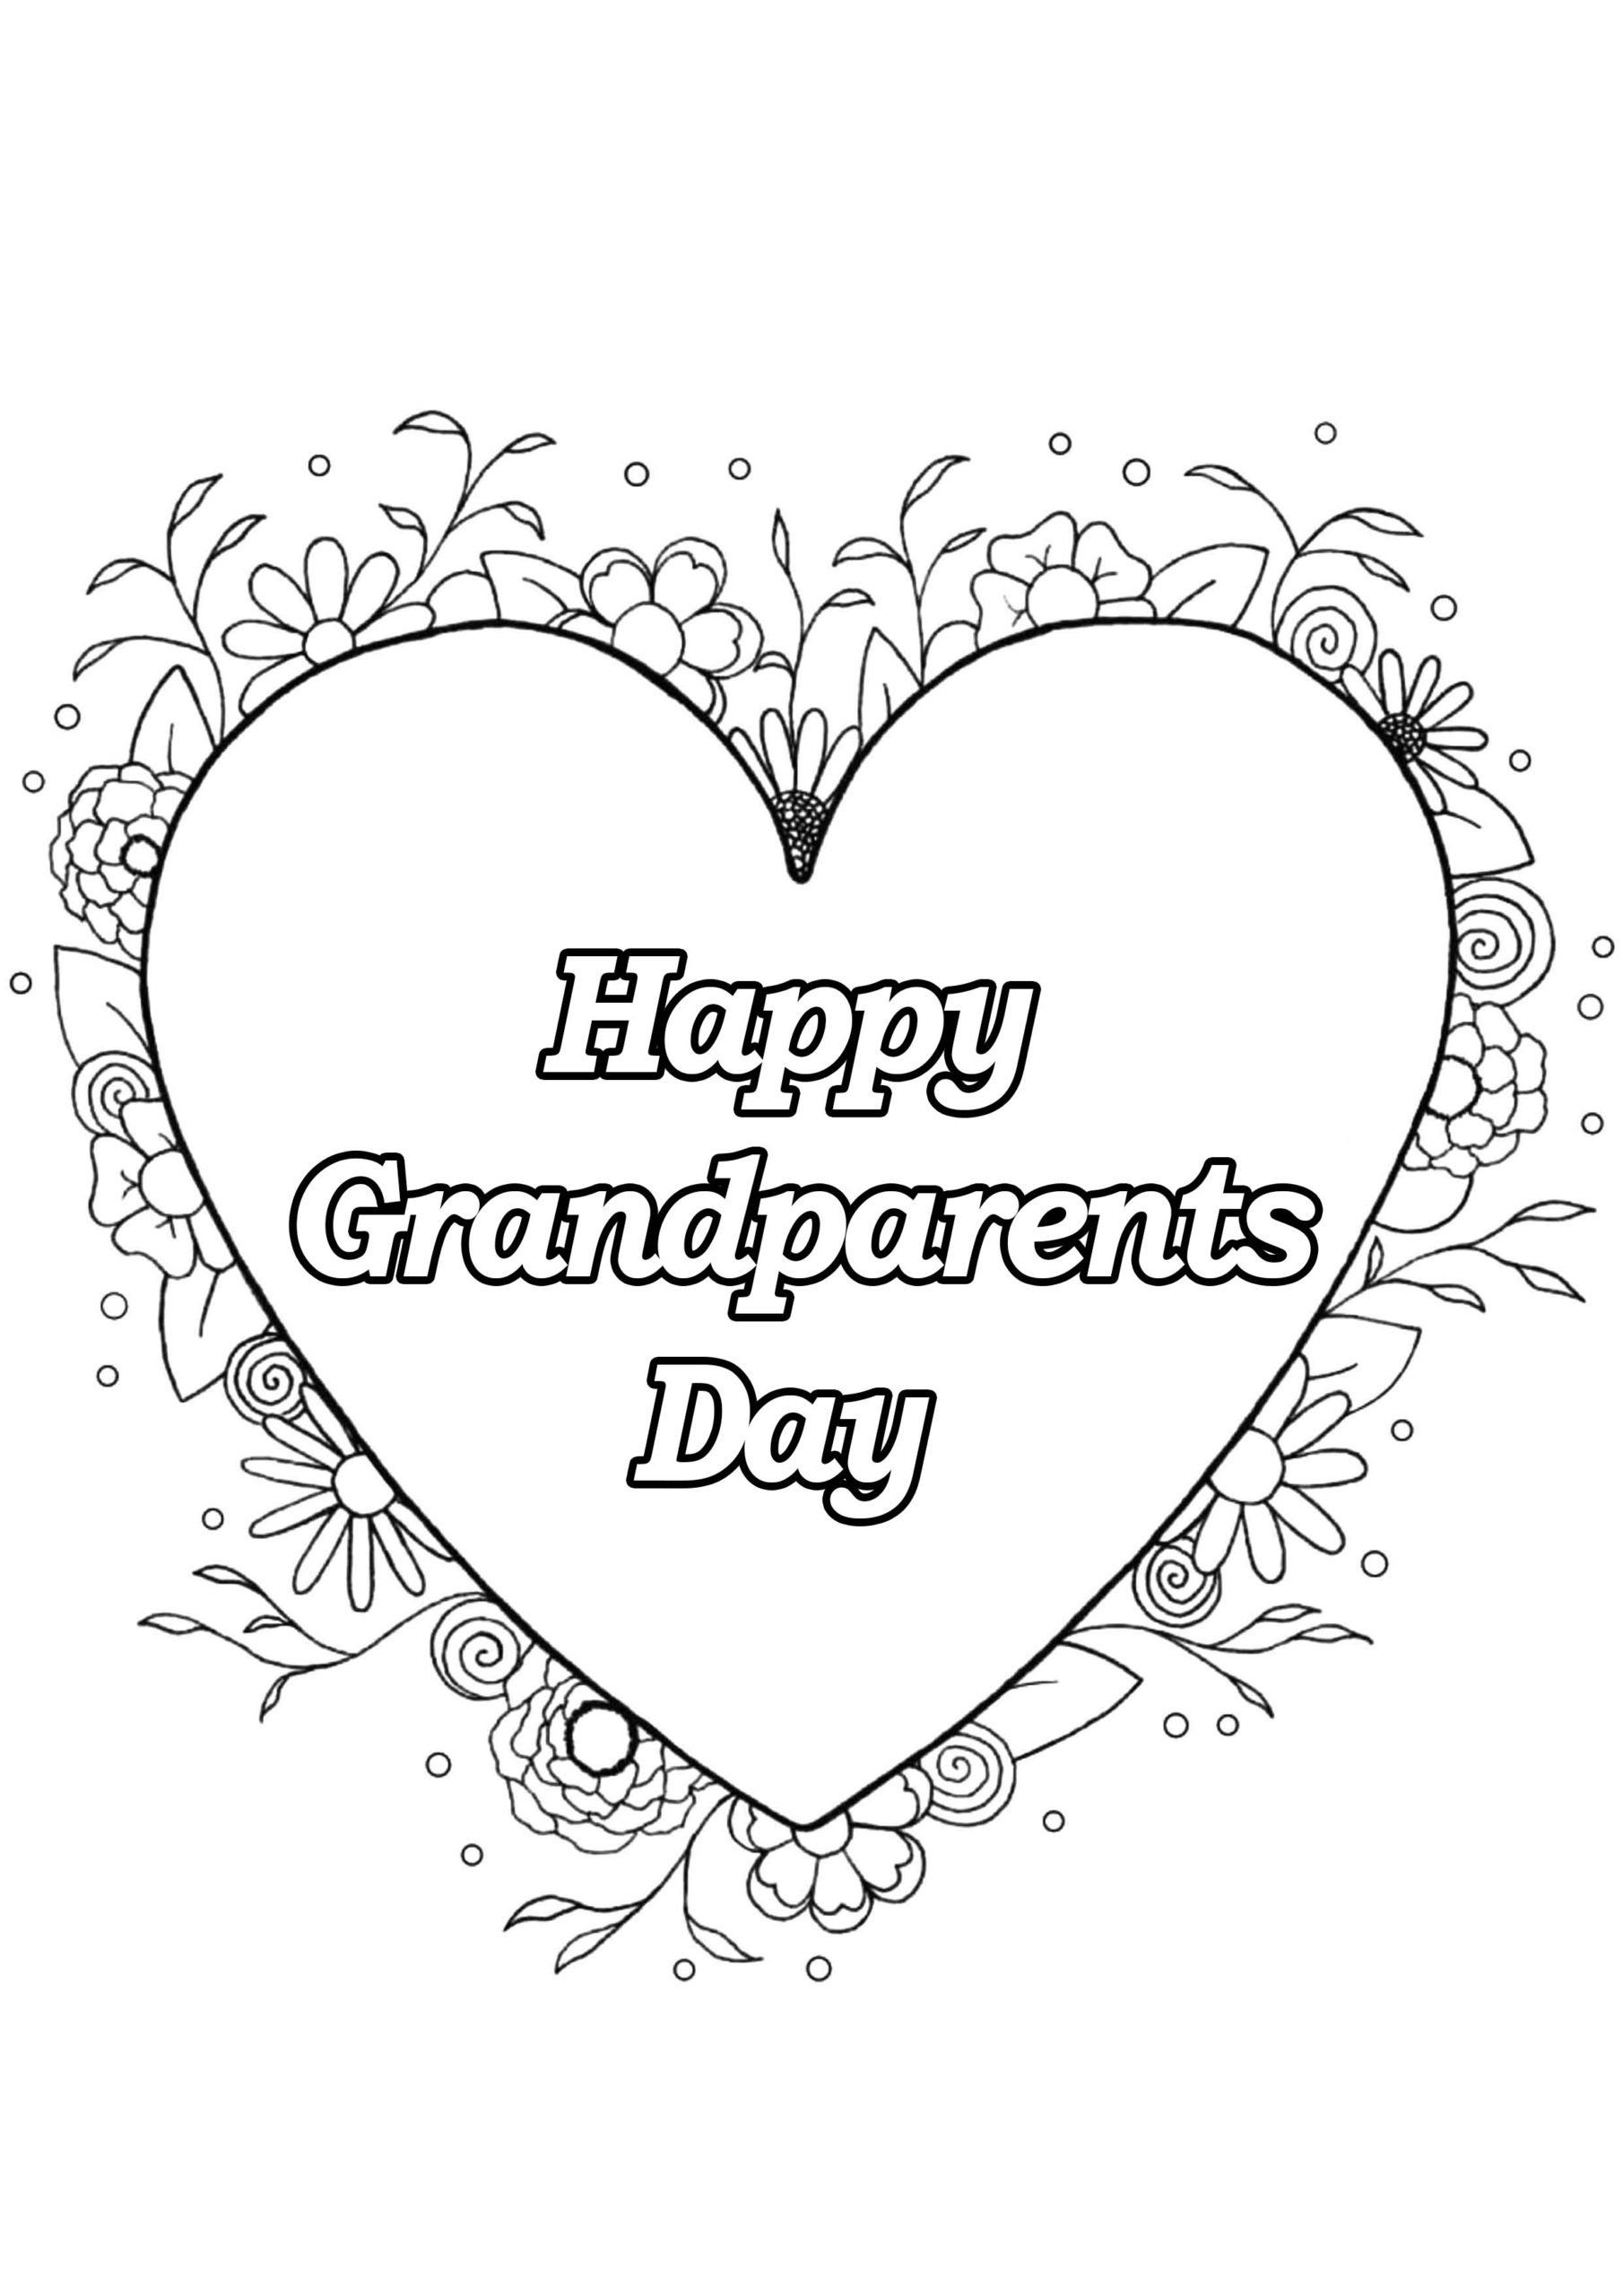 Grandparents Day Printable Coloring Pages Coloring Book